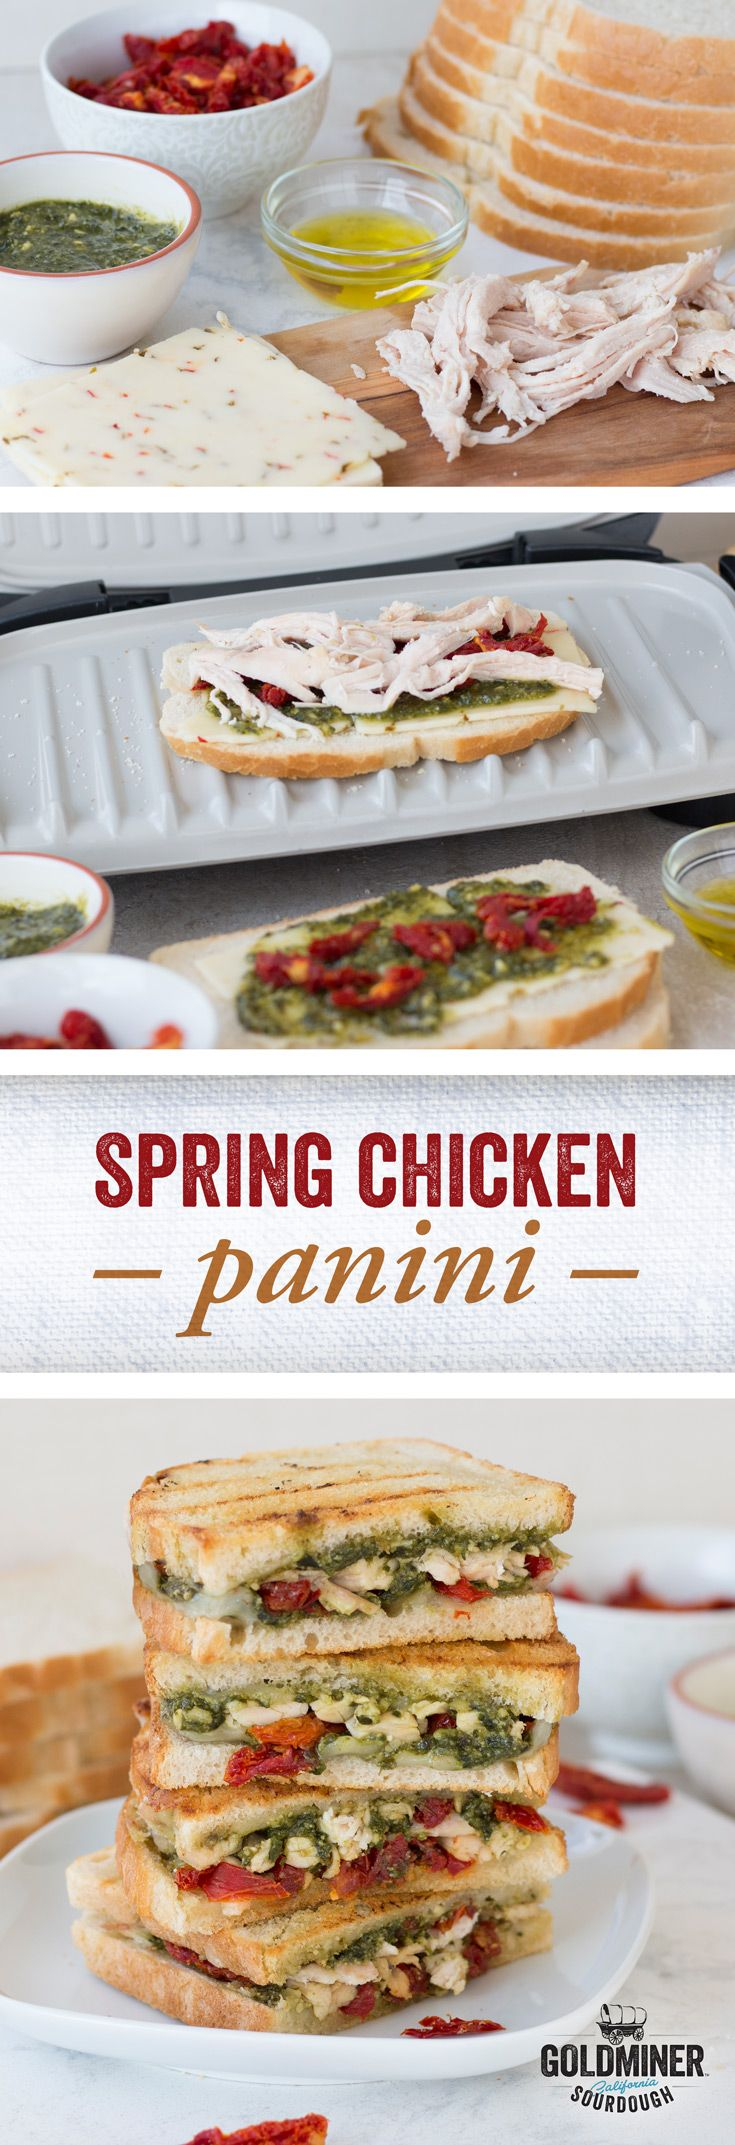 Spring Chicken Panini: Embrace the bold flavors of tangy California Goldminer Sourdough Bread, pesto, roast chicken and sun-dried tomatoes on this perfect panini.